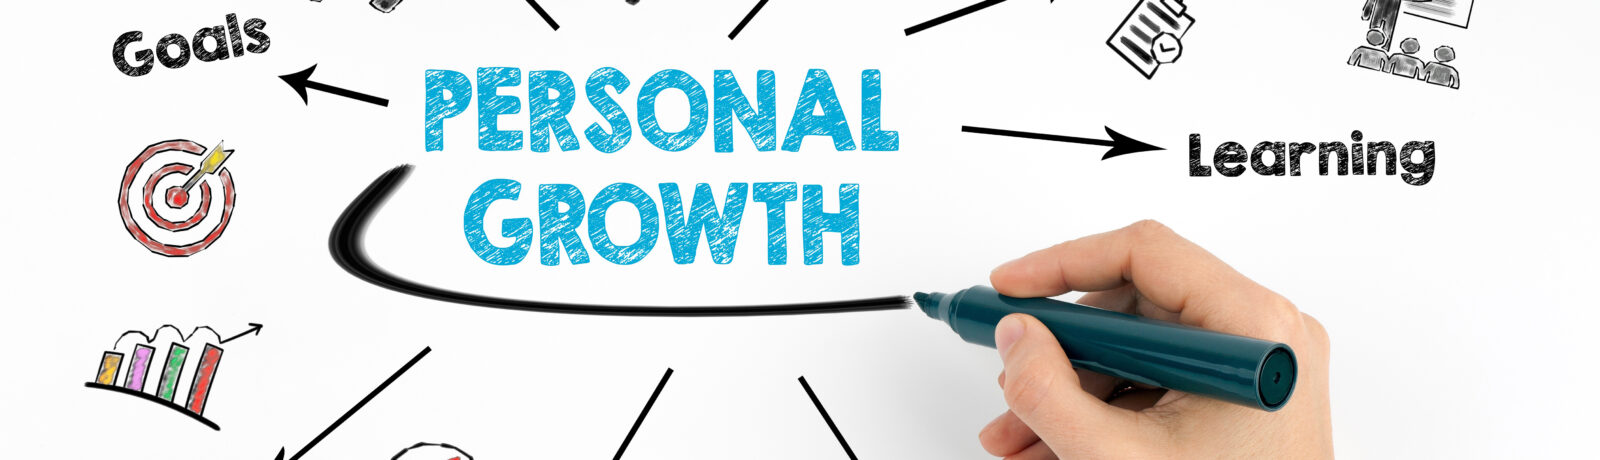 """The word """"personal growth"""" written on a whiteboard surrounded by related concepts."""